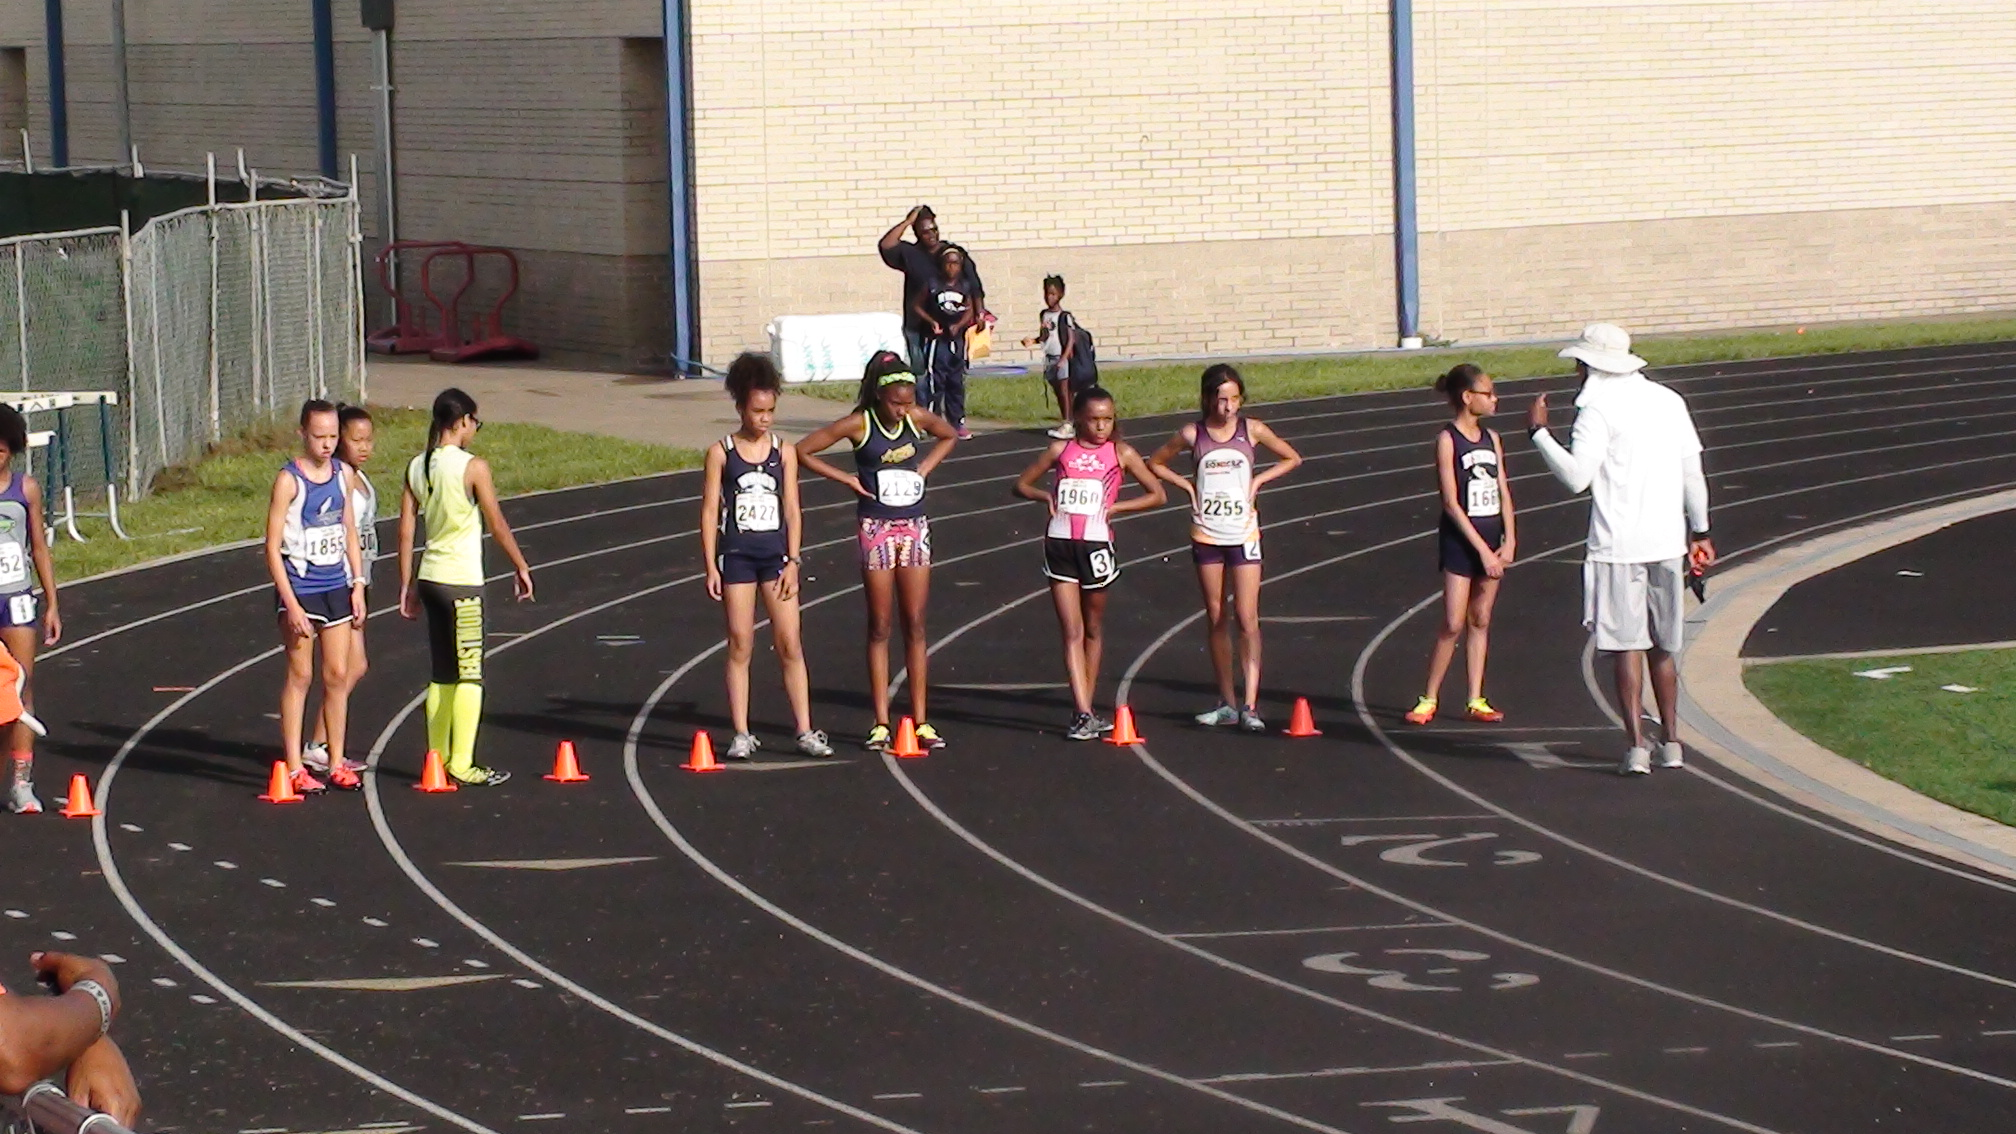 Michelle lined up for the 1500m